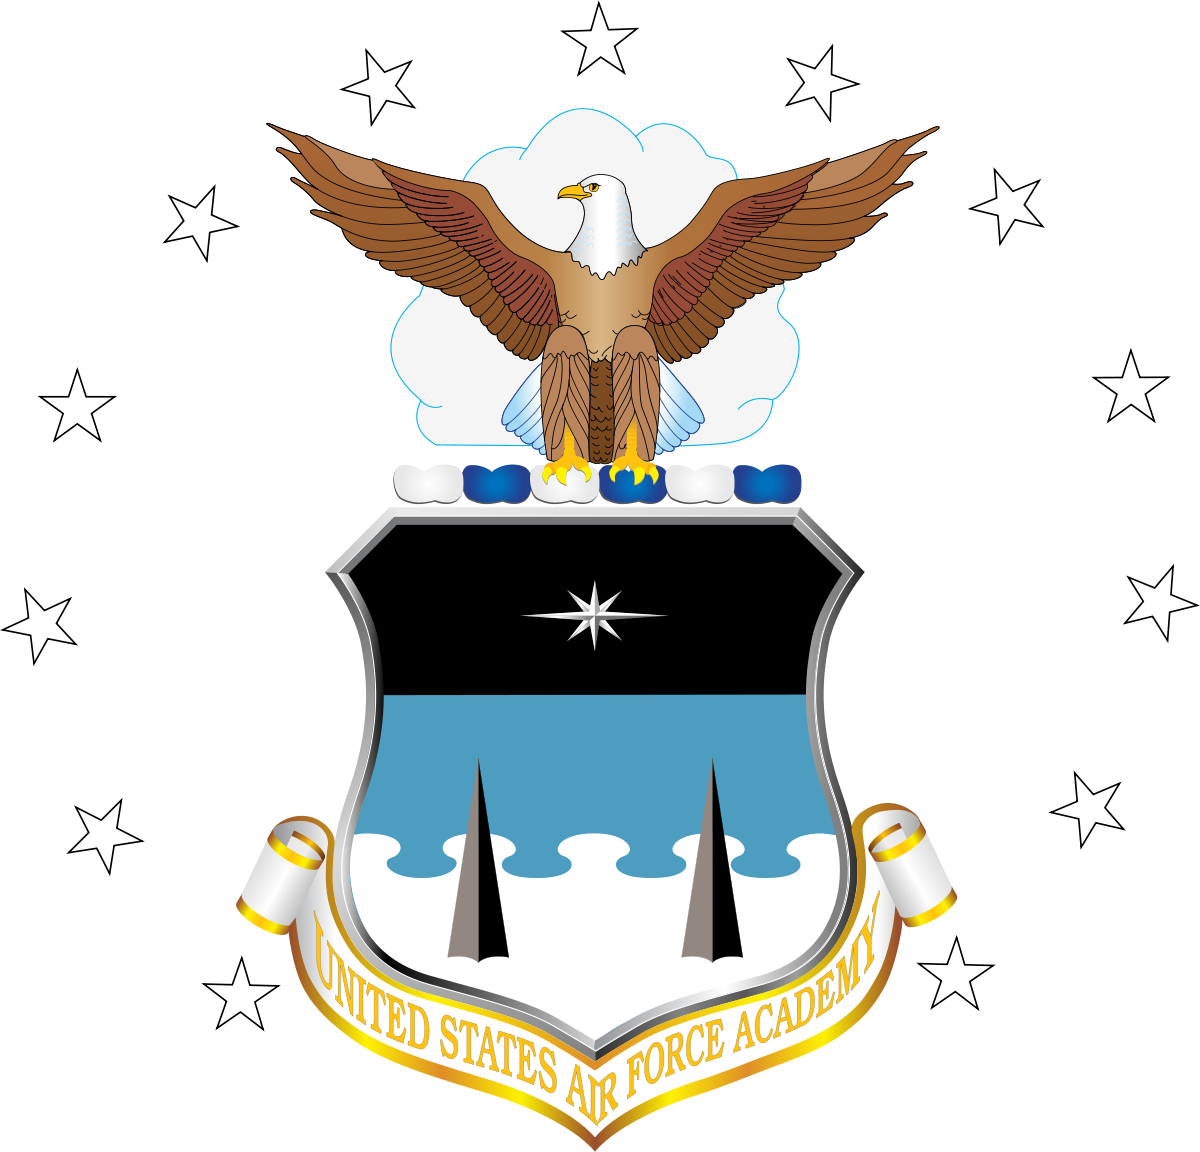 Pilot clipart security guard logo. United states air force